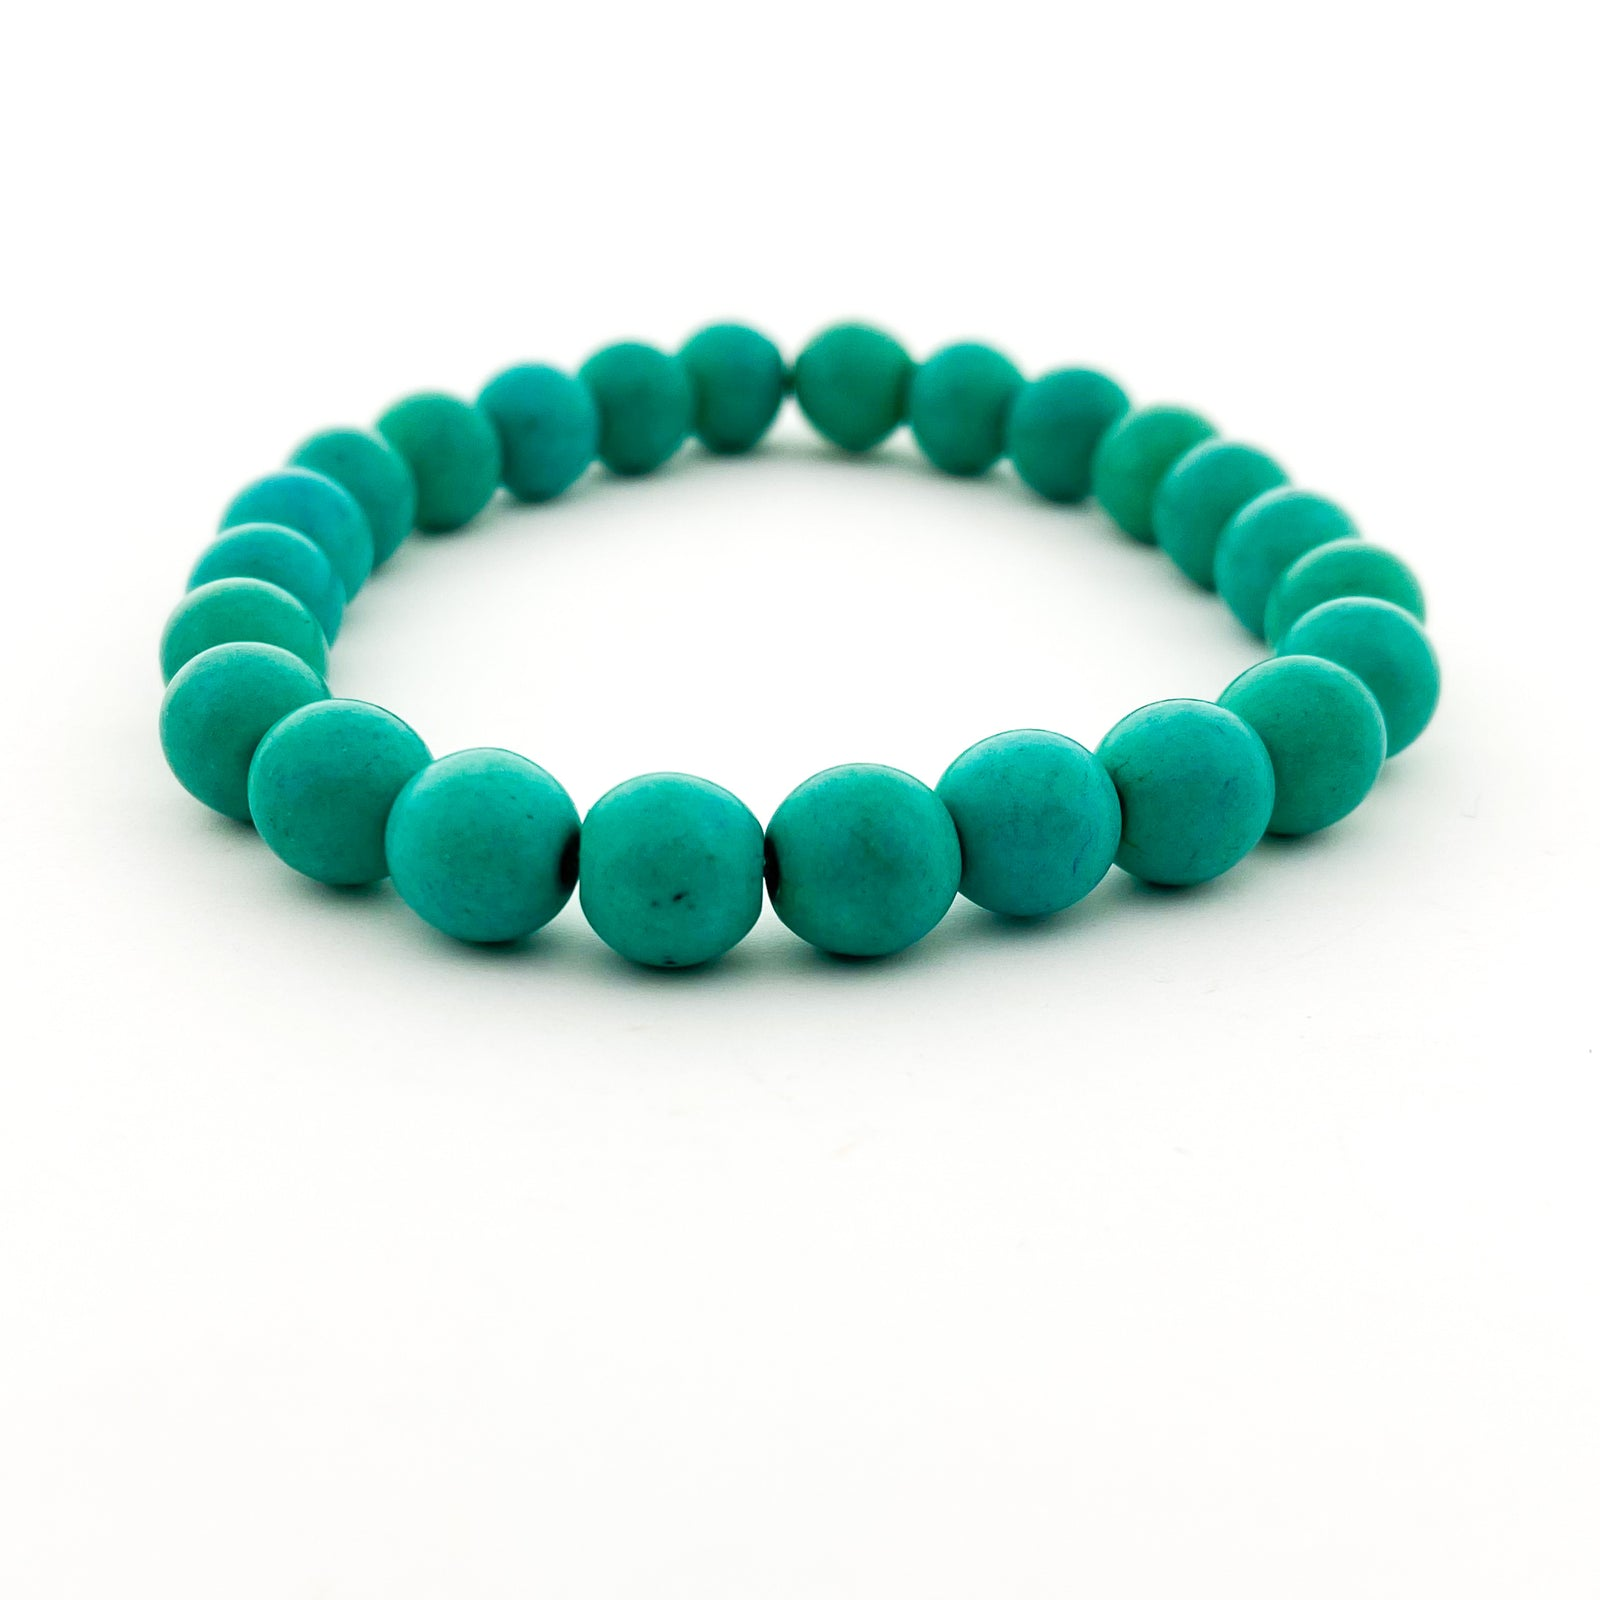 BRIGHT HOWLITE STONE BRACELETS | 8MM | STYLE OPTIONS